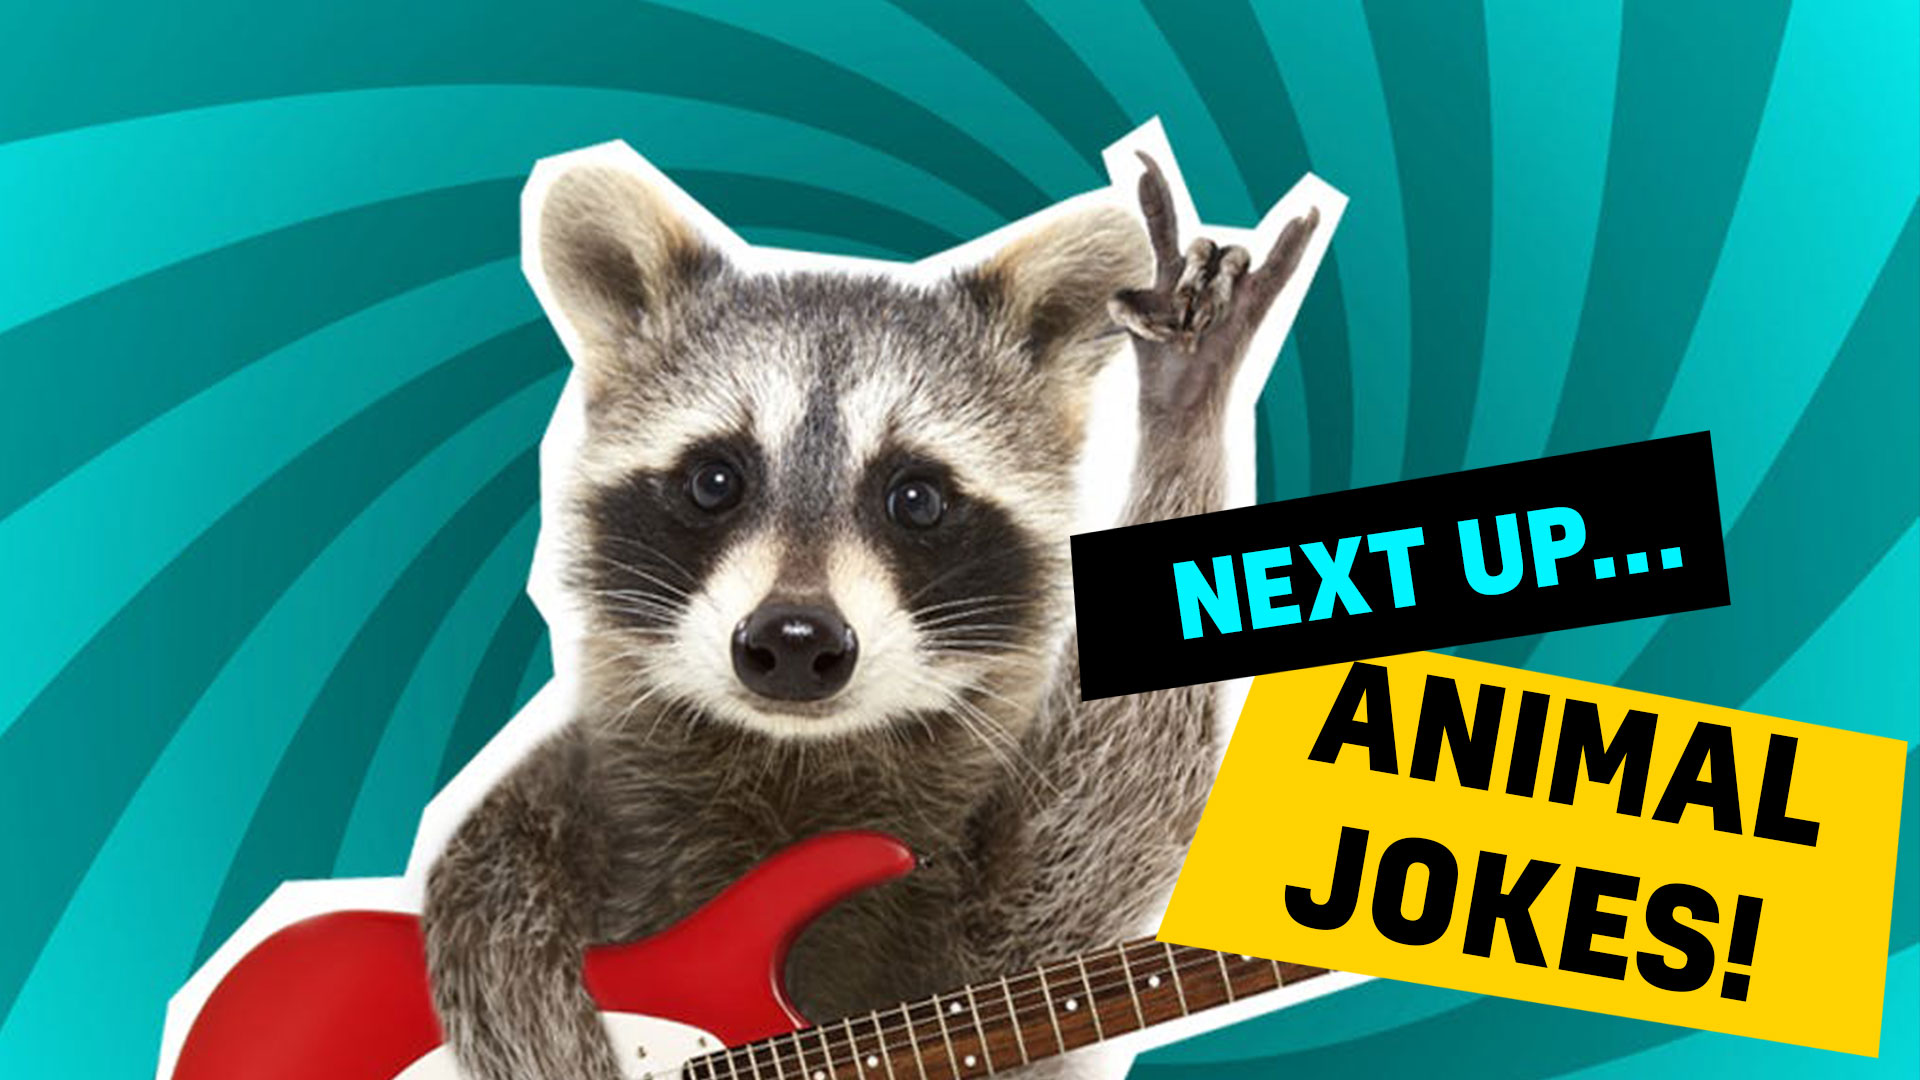 A racoon plays the guitar while you enjoy our animal jokes